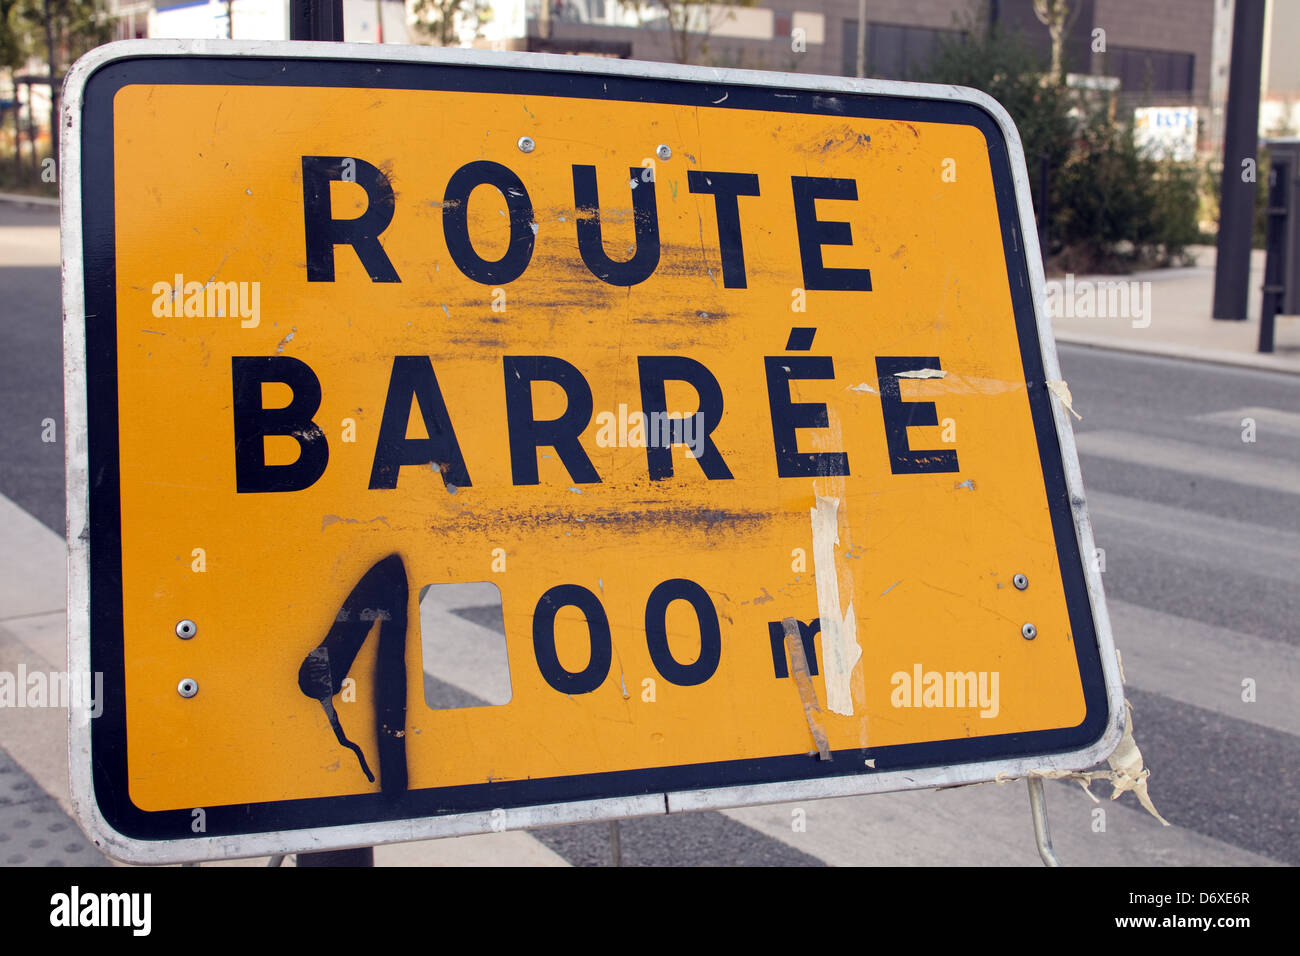 Route Barree sign in Lyon,France - Stock Image